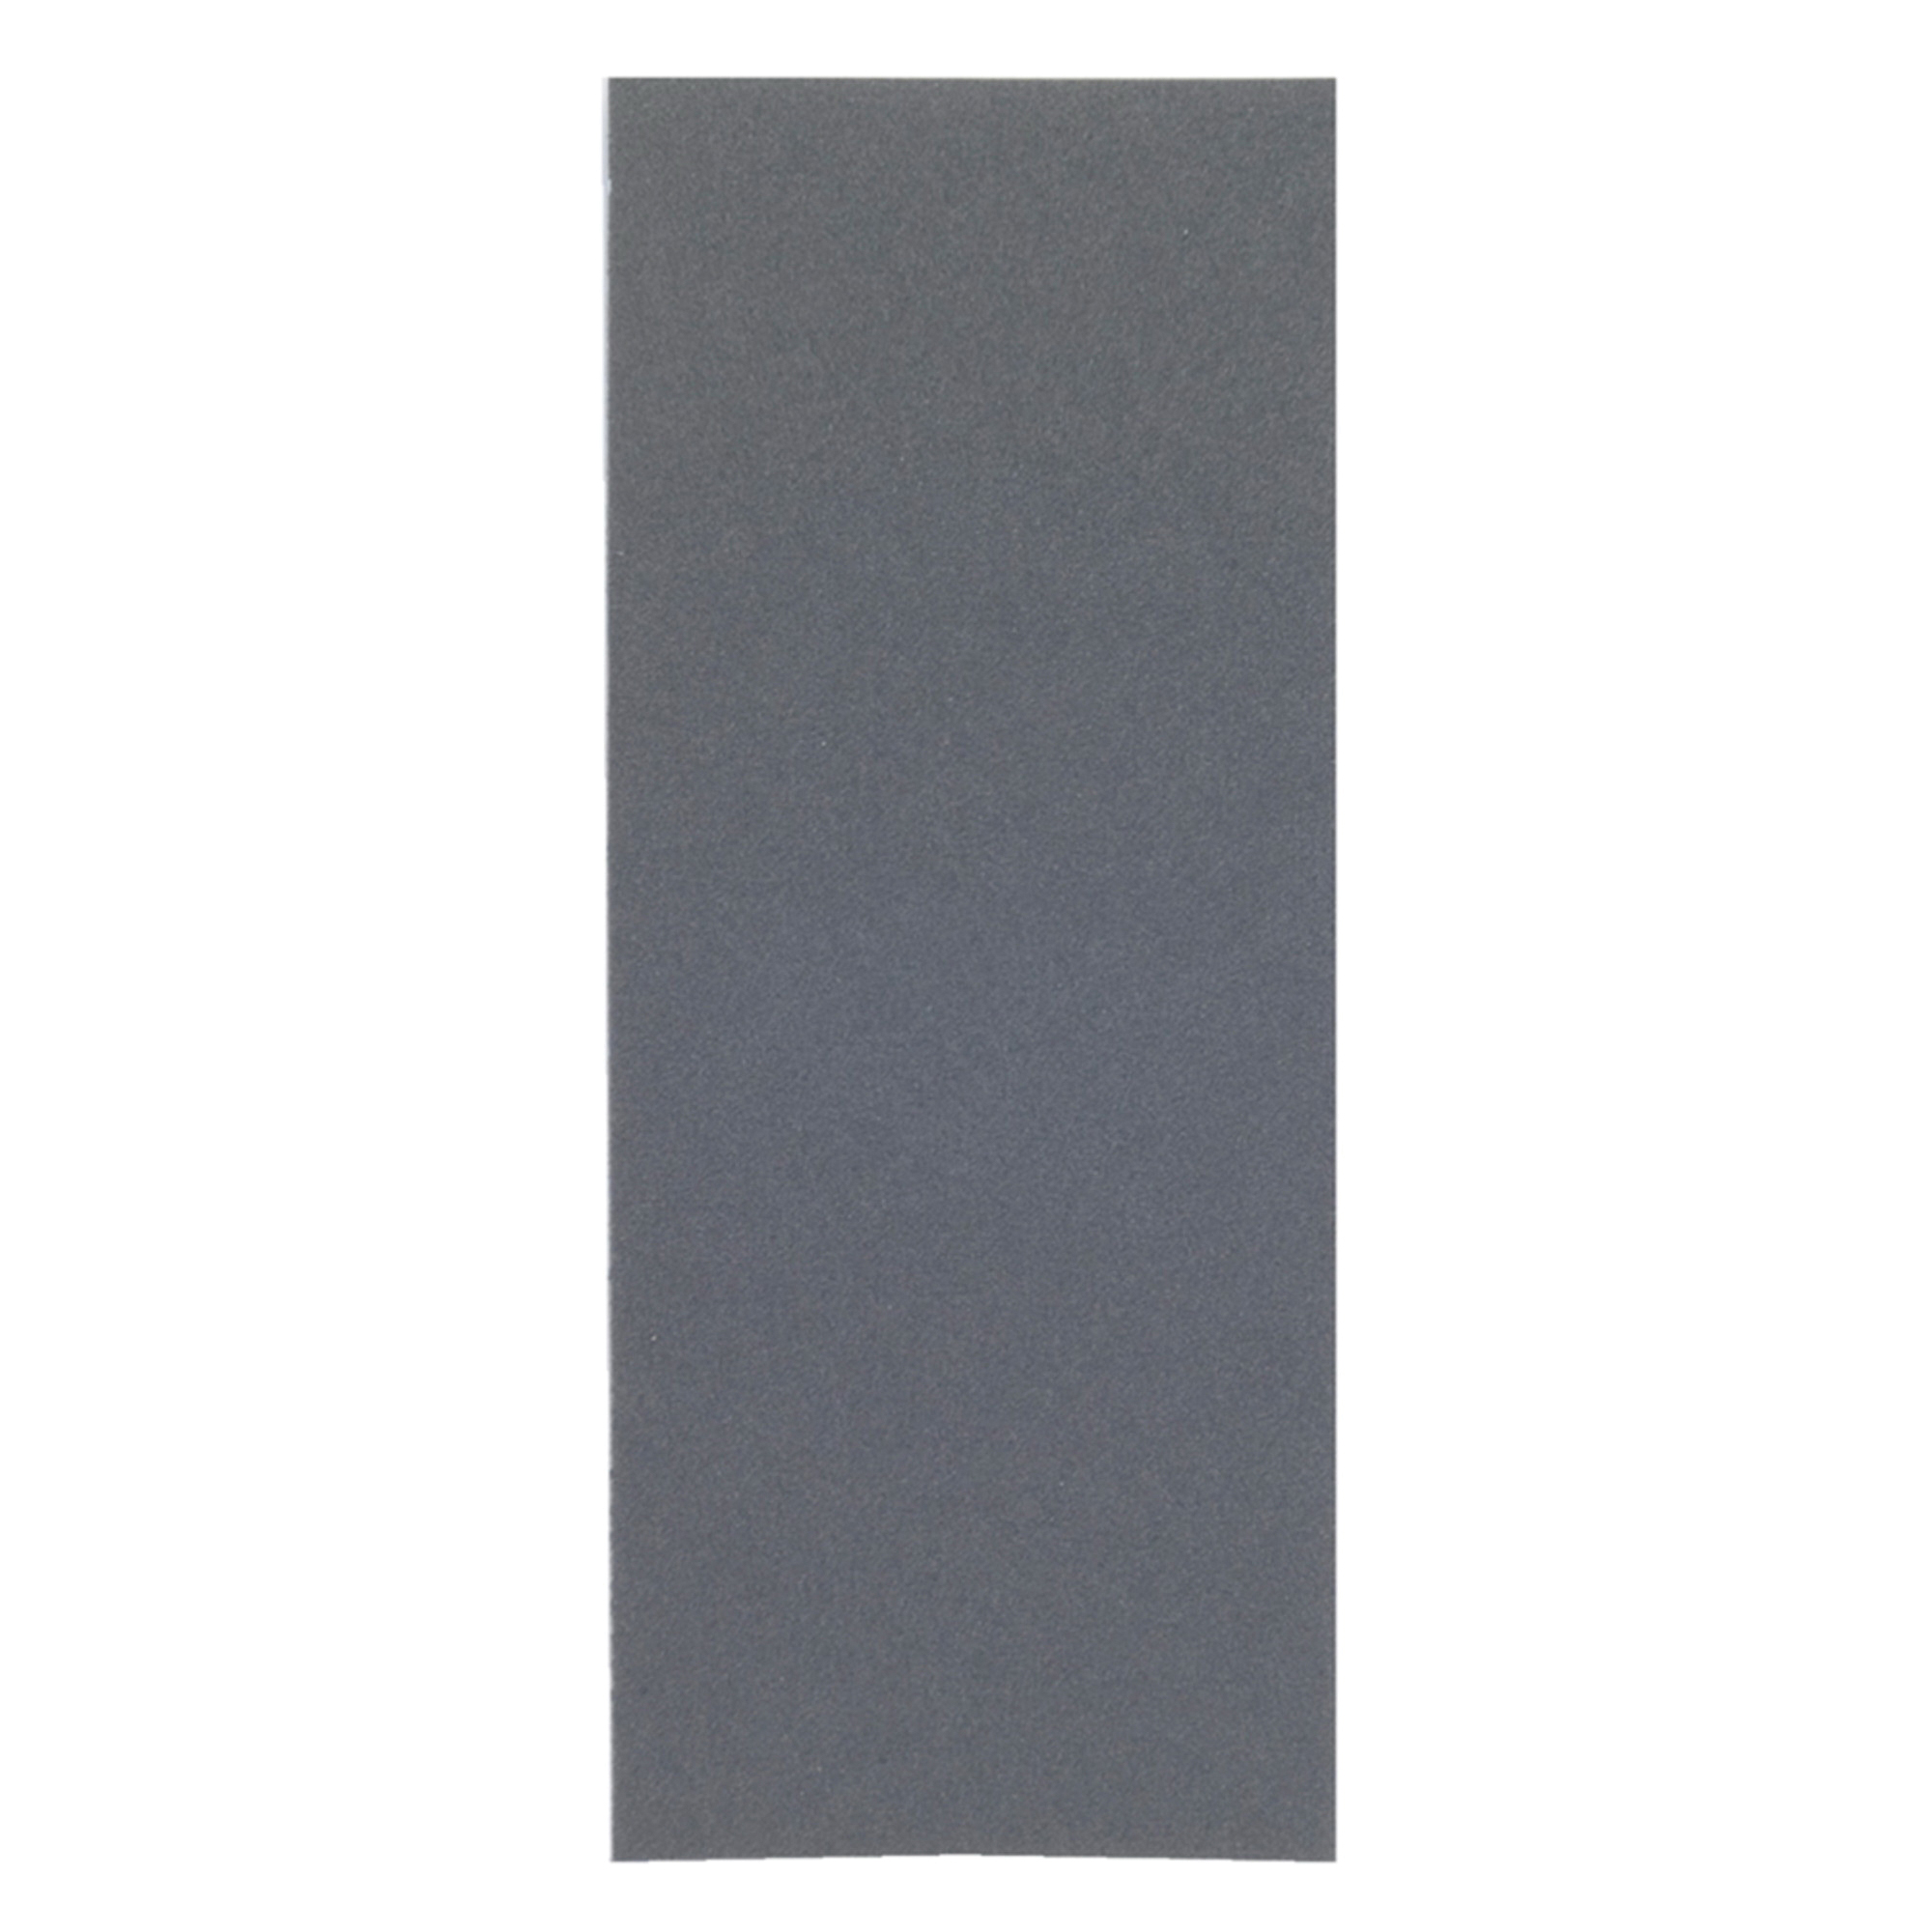 Norton® Blue-Bak™ 66261139352 T414 Coated Sandpaper Sheet, 9 in L x 3-2/3 in W, 600 Grit, Ultra Fine Grade, Silicon Carbide Abrasive, Paper Backing